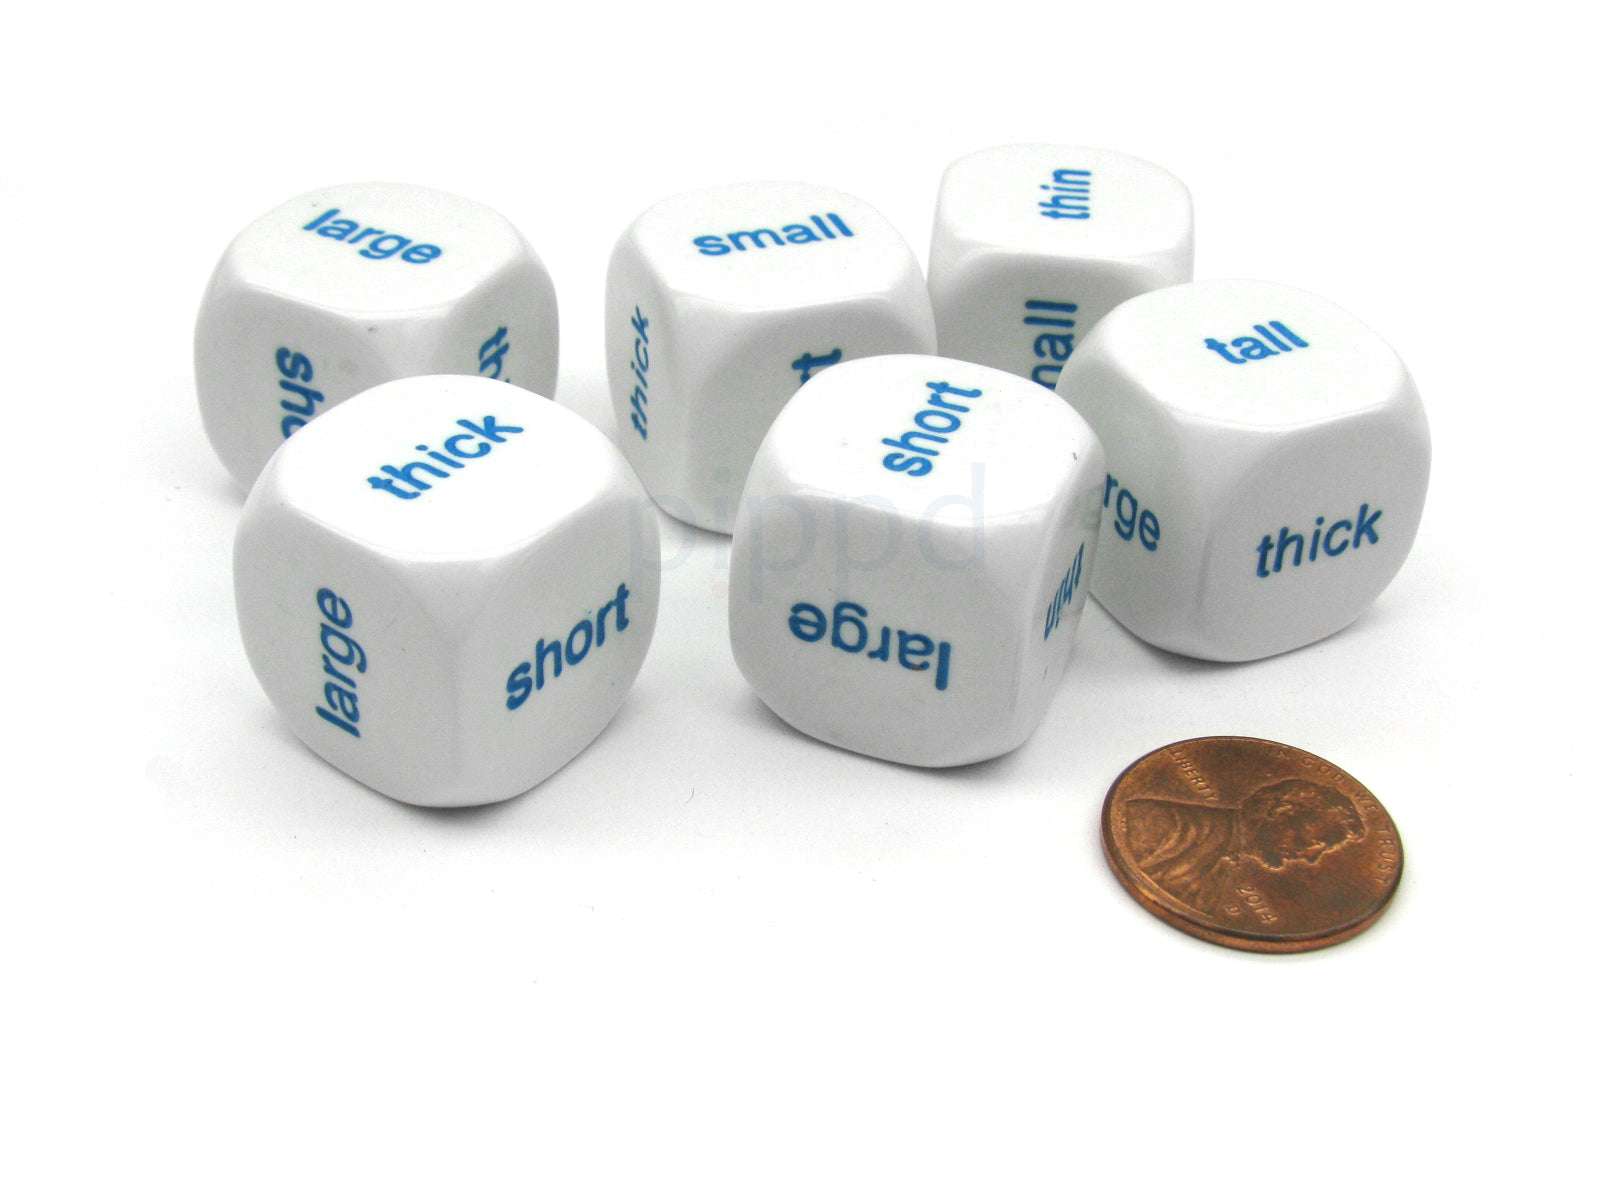 Pack of 6 20mm English Comparison Dice - Large Small Tall Short Thick Thin